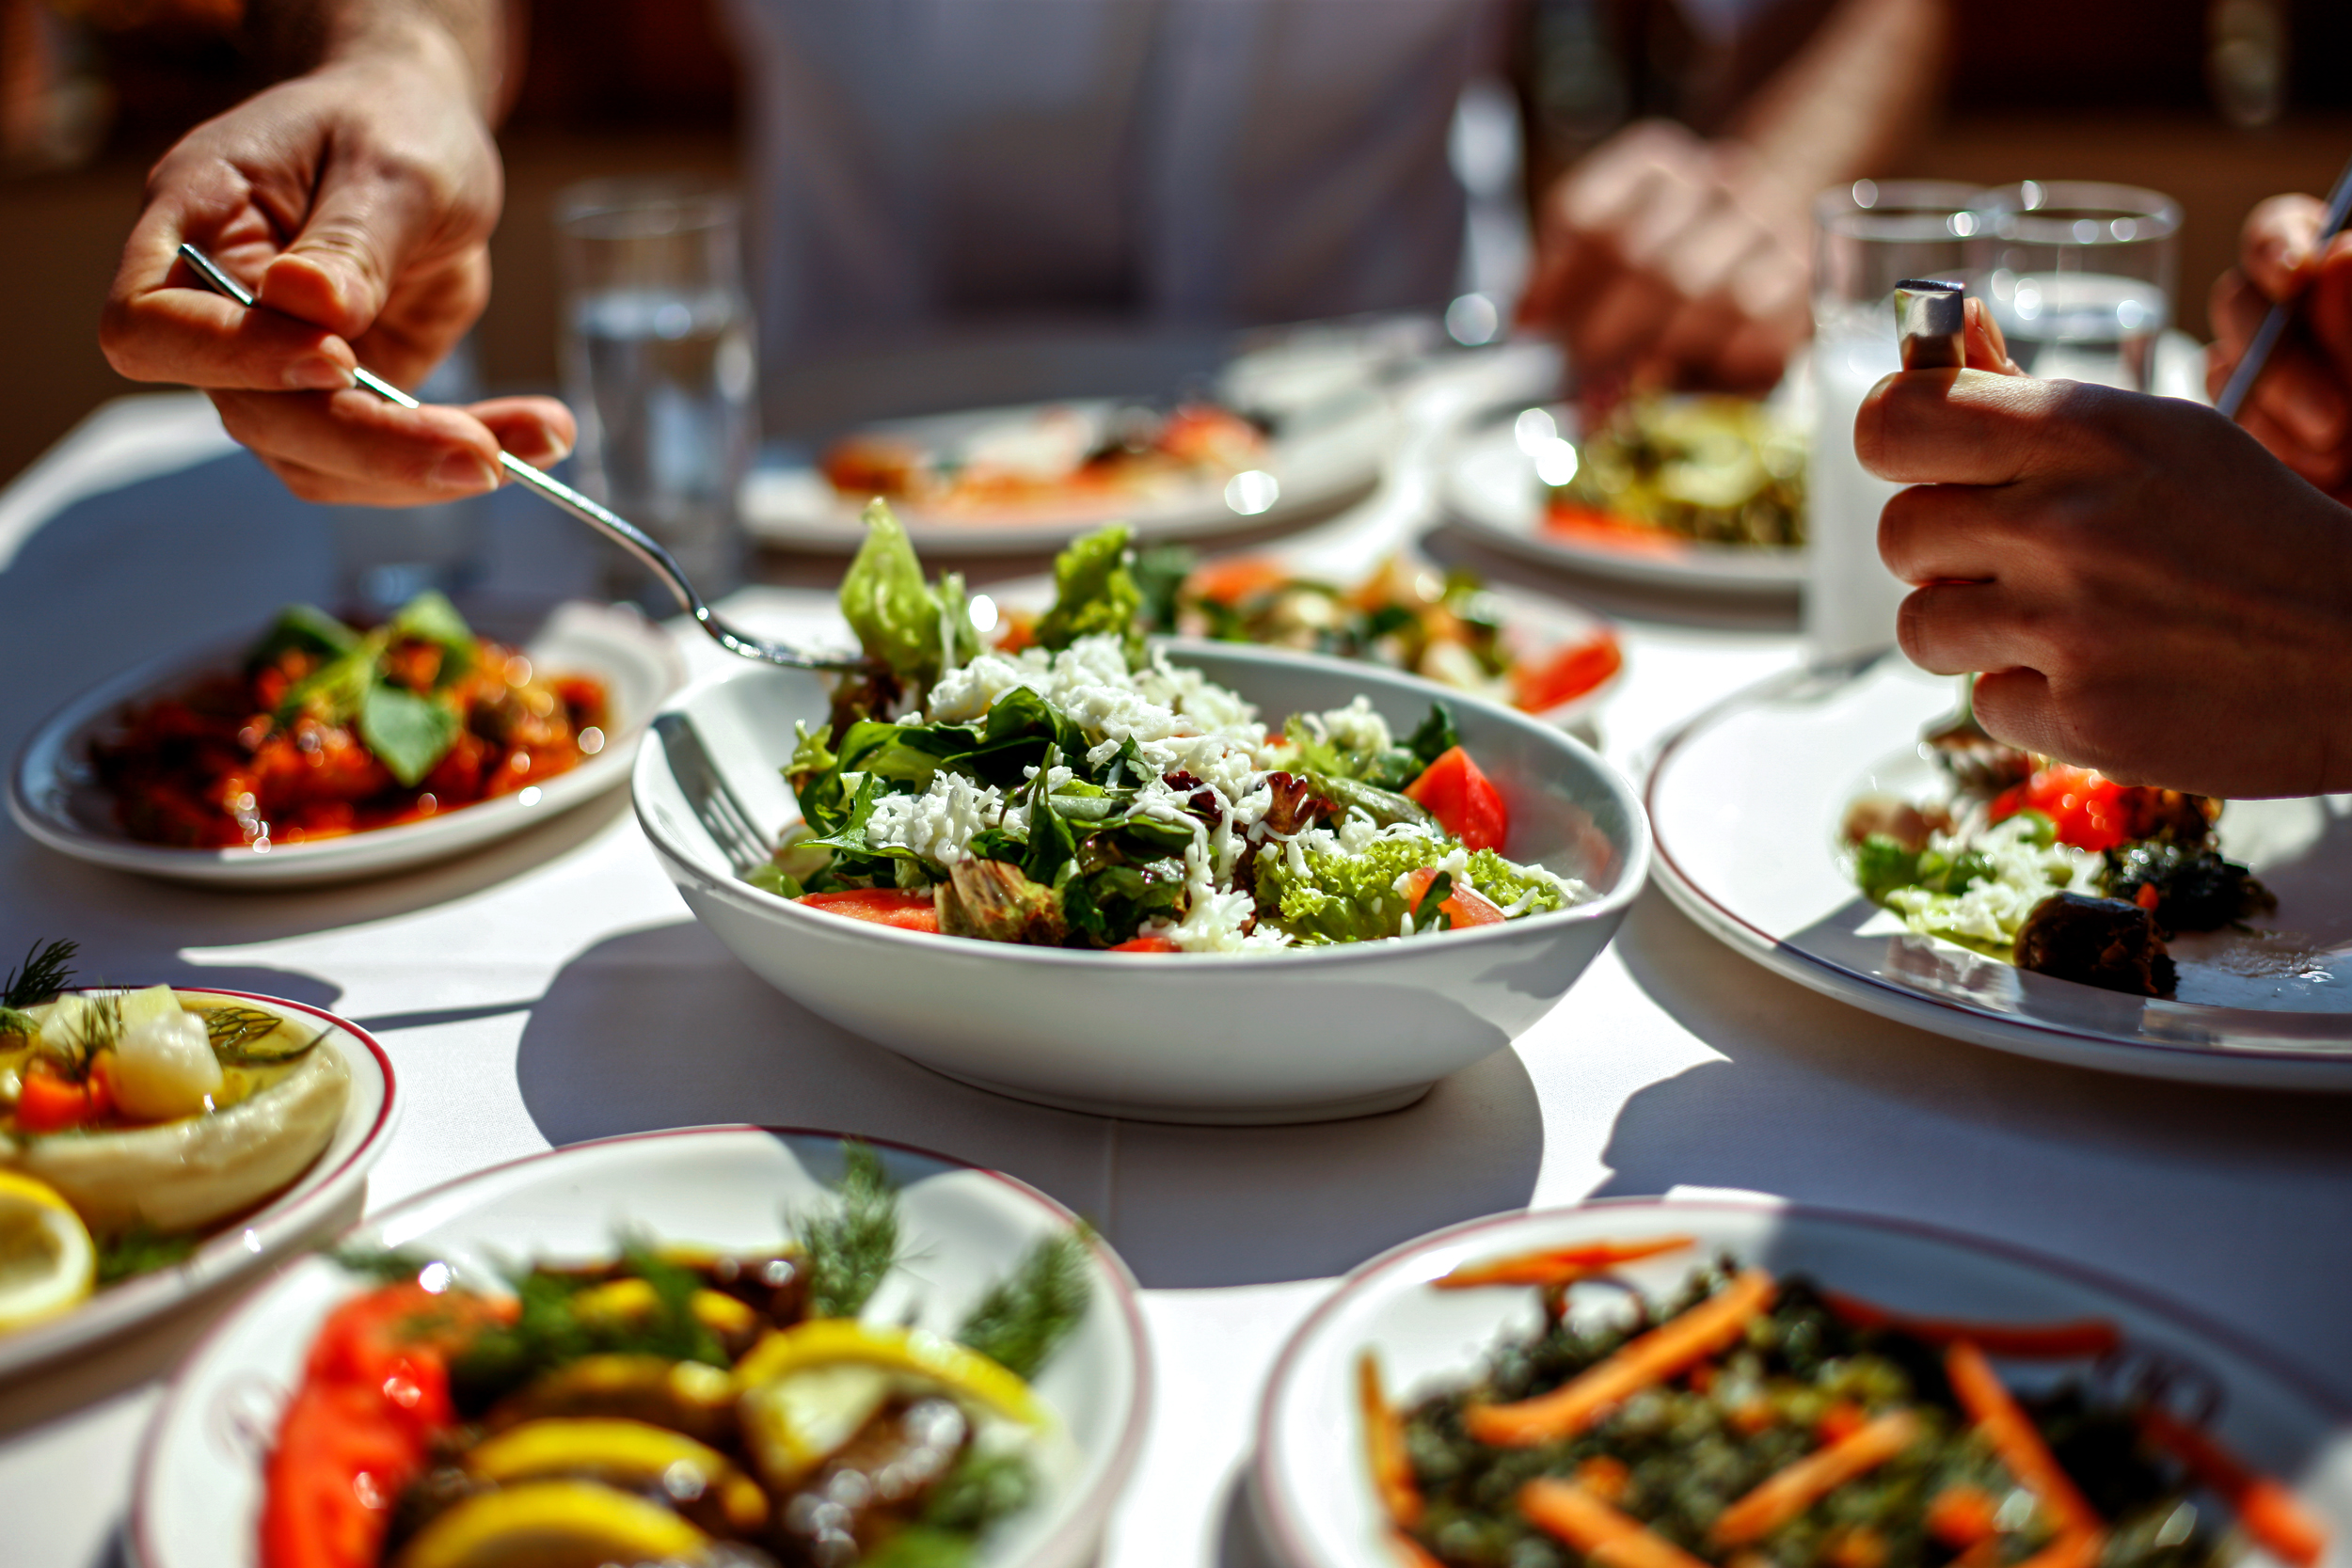 low fat diet reduces cancer